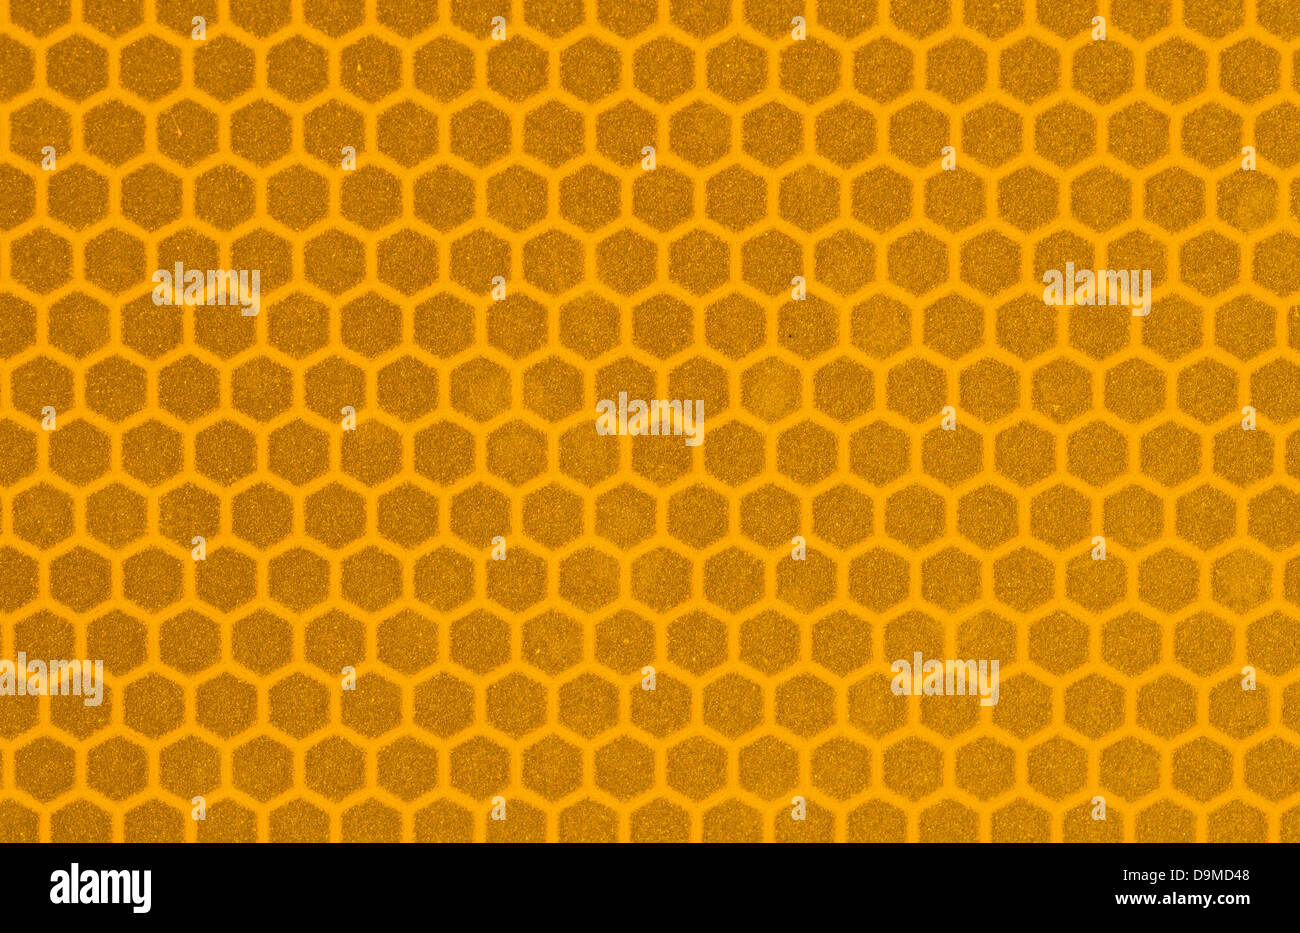 macro image of yellow reflective sign surface with hexagonal pattern - Stock Image